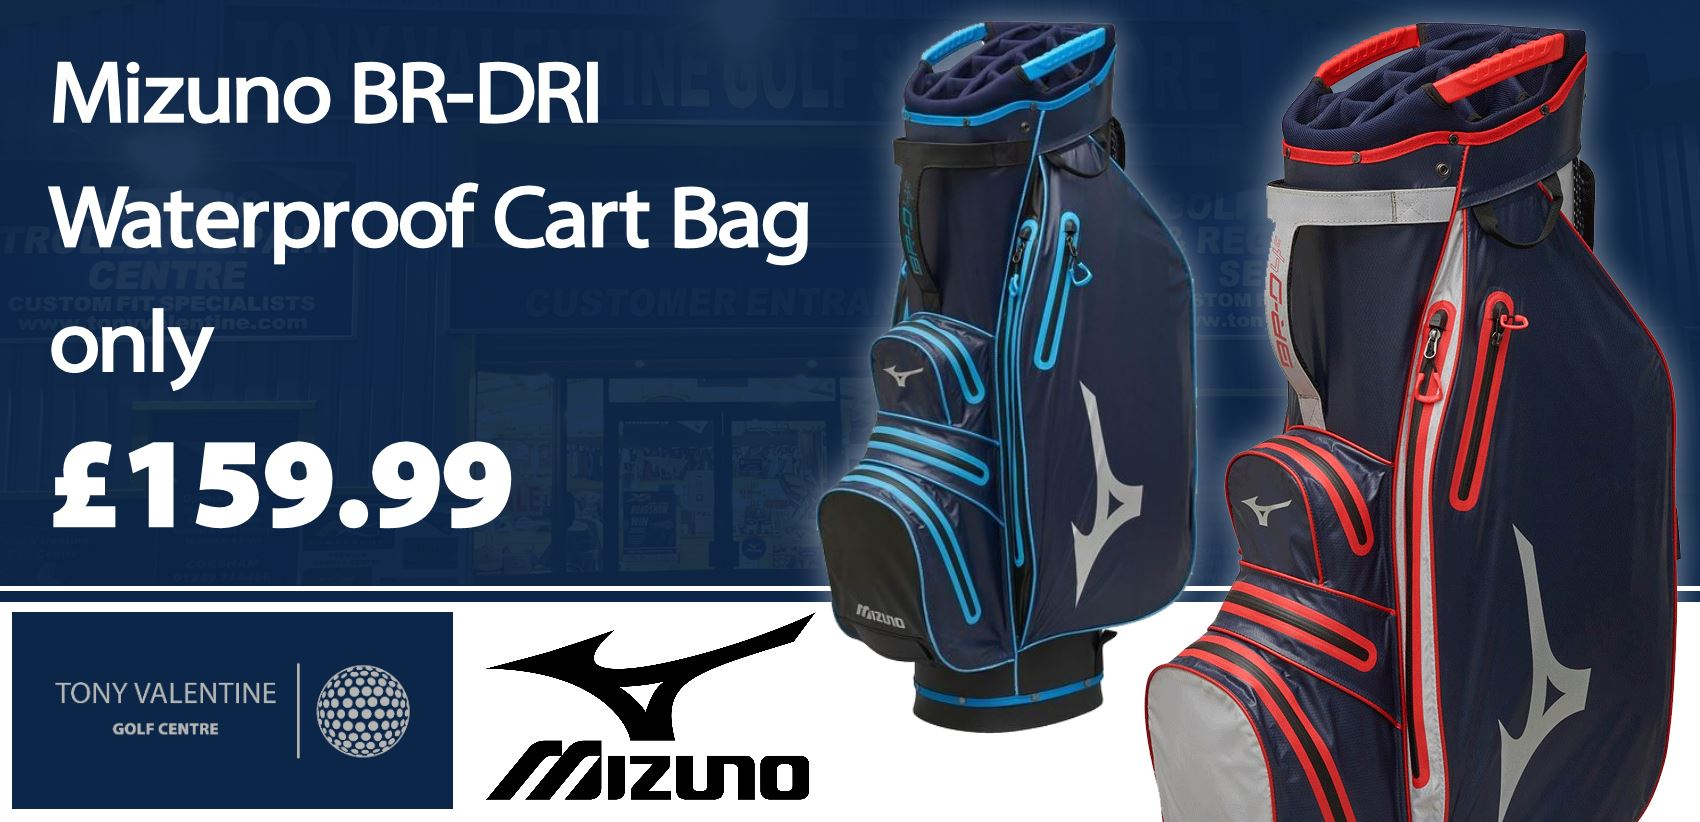 Mizuno Br-Dri Waterproof Cart Bag